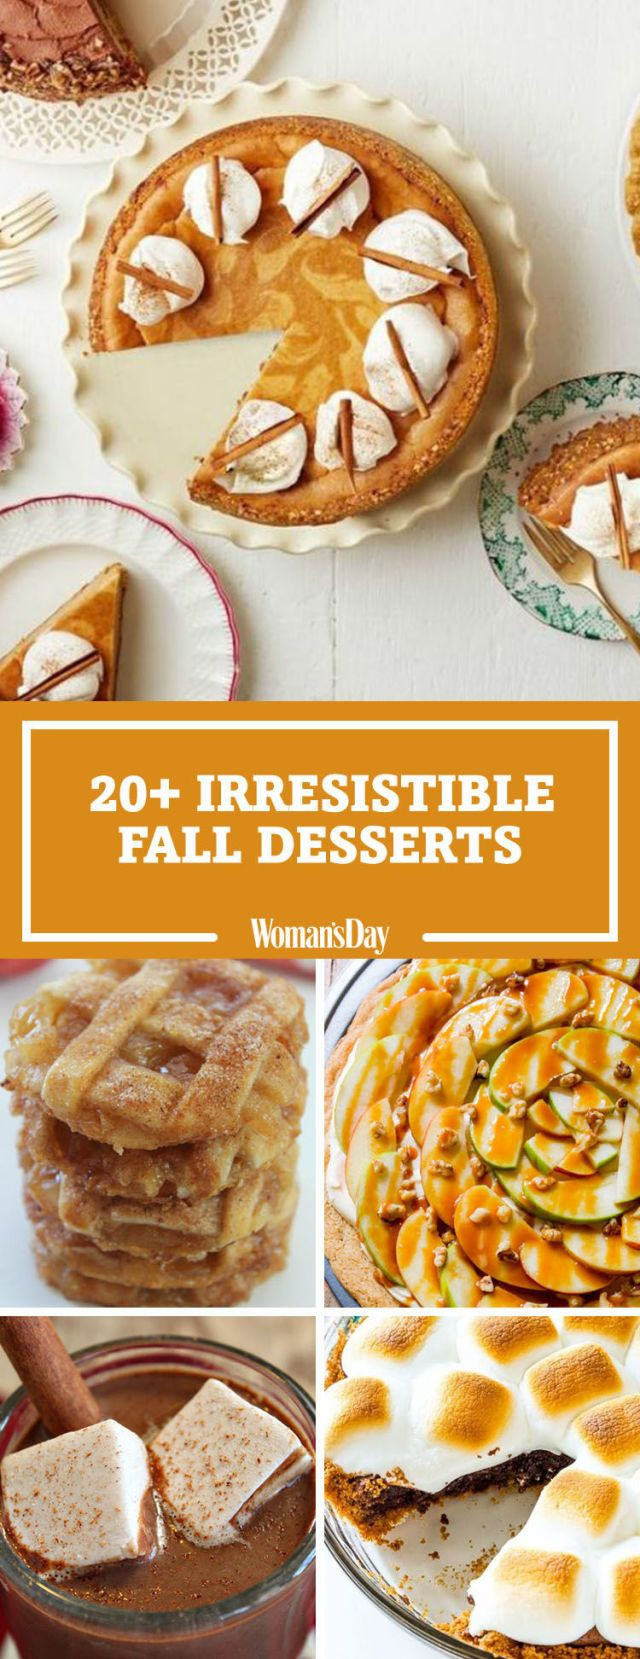 Desserts For Fall  31 Easy Fall Desserts Best Recipes for Autumn Desserts